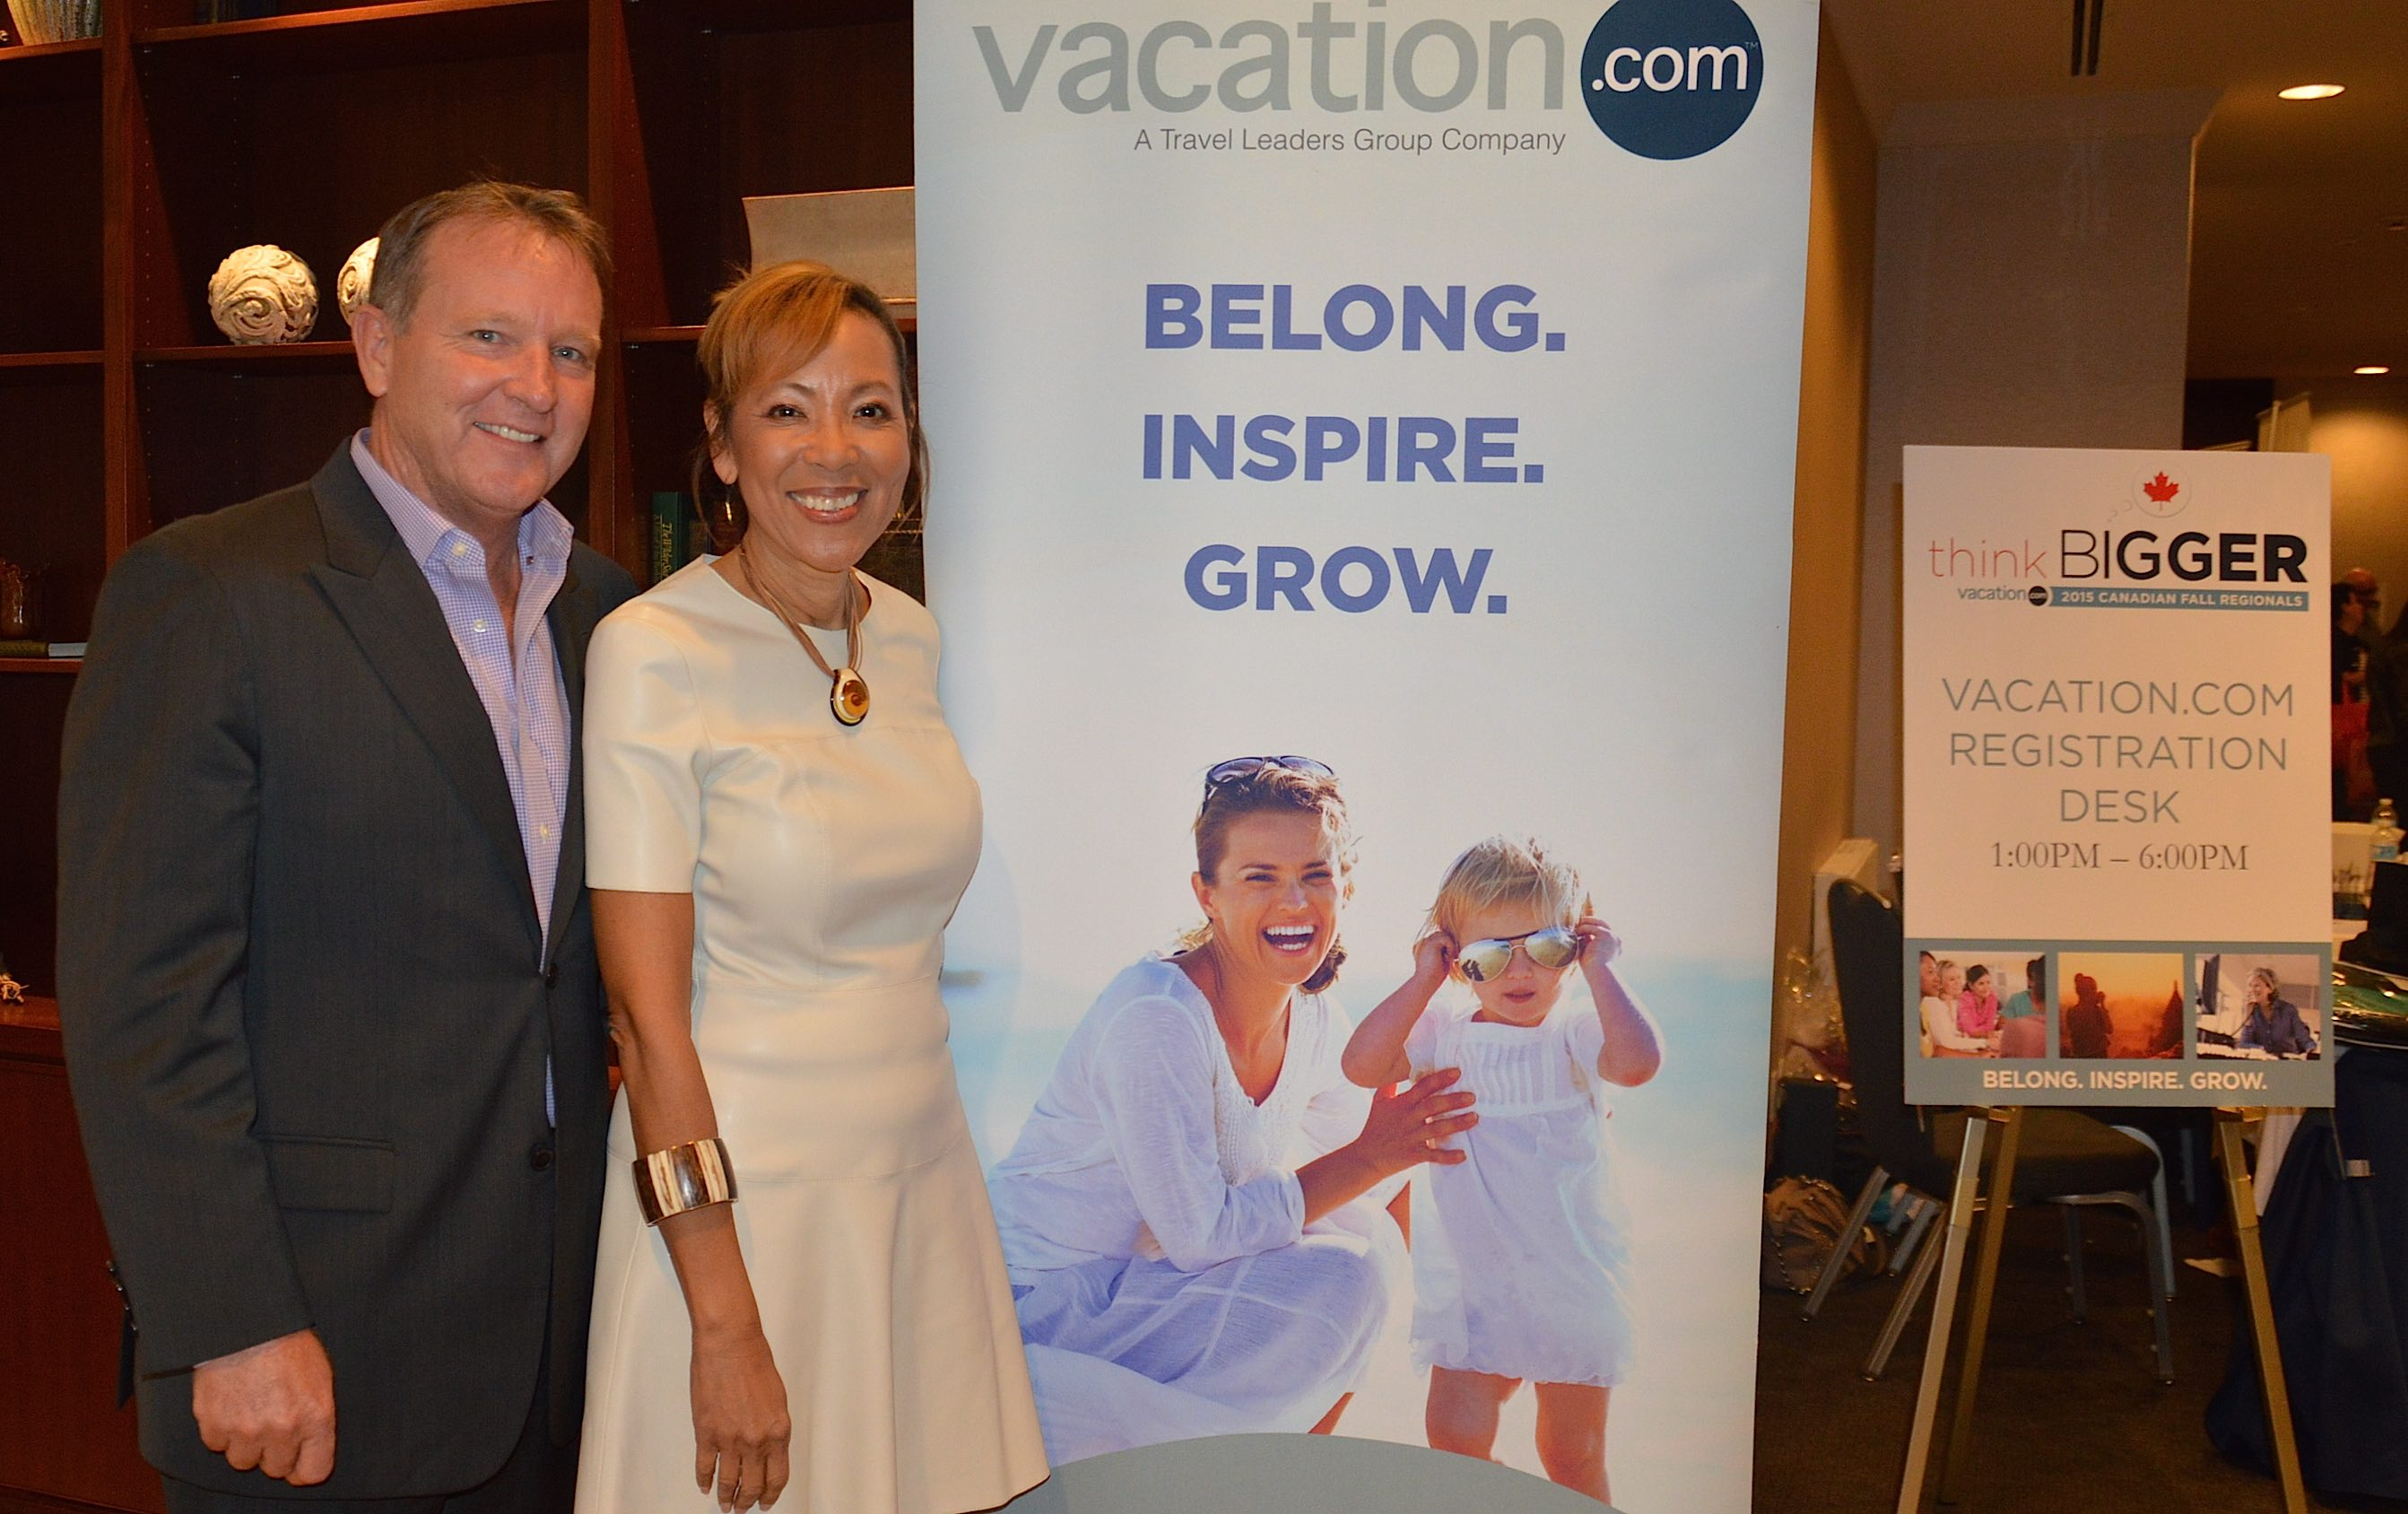 Vacation.com sees record-breaking engagement